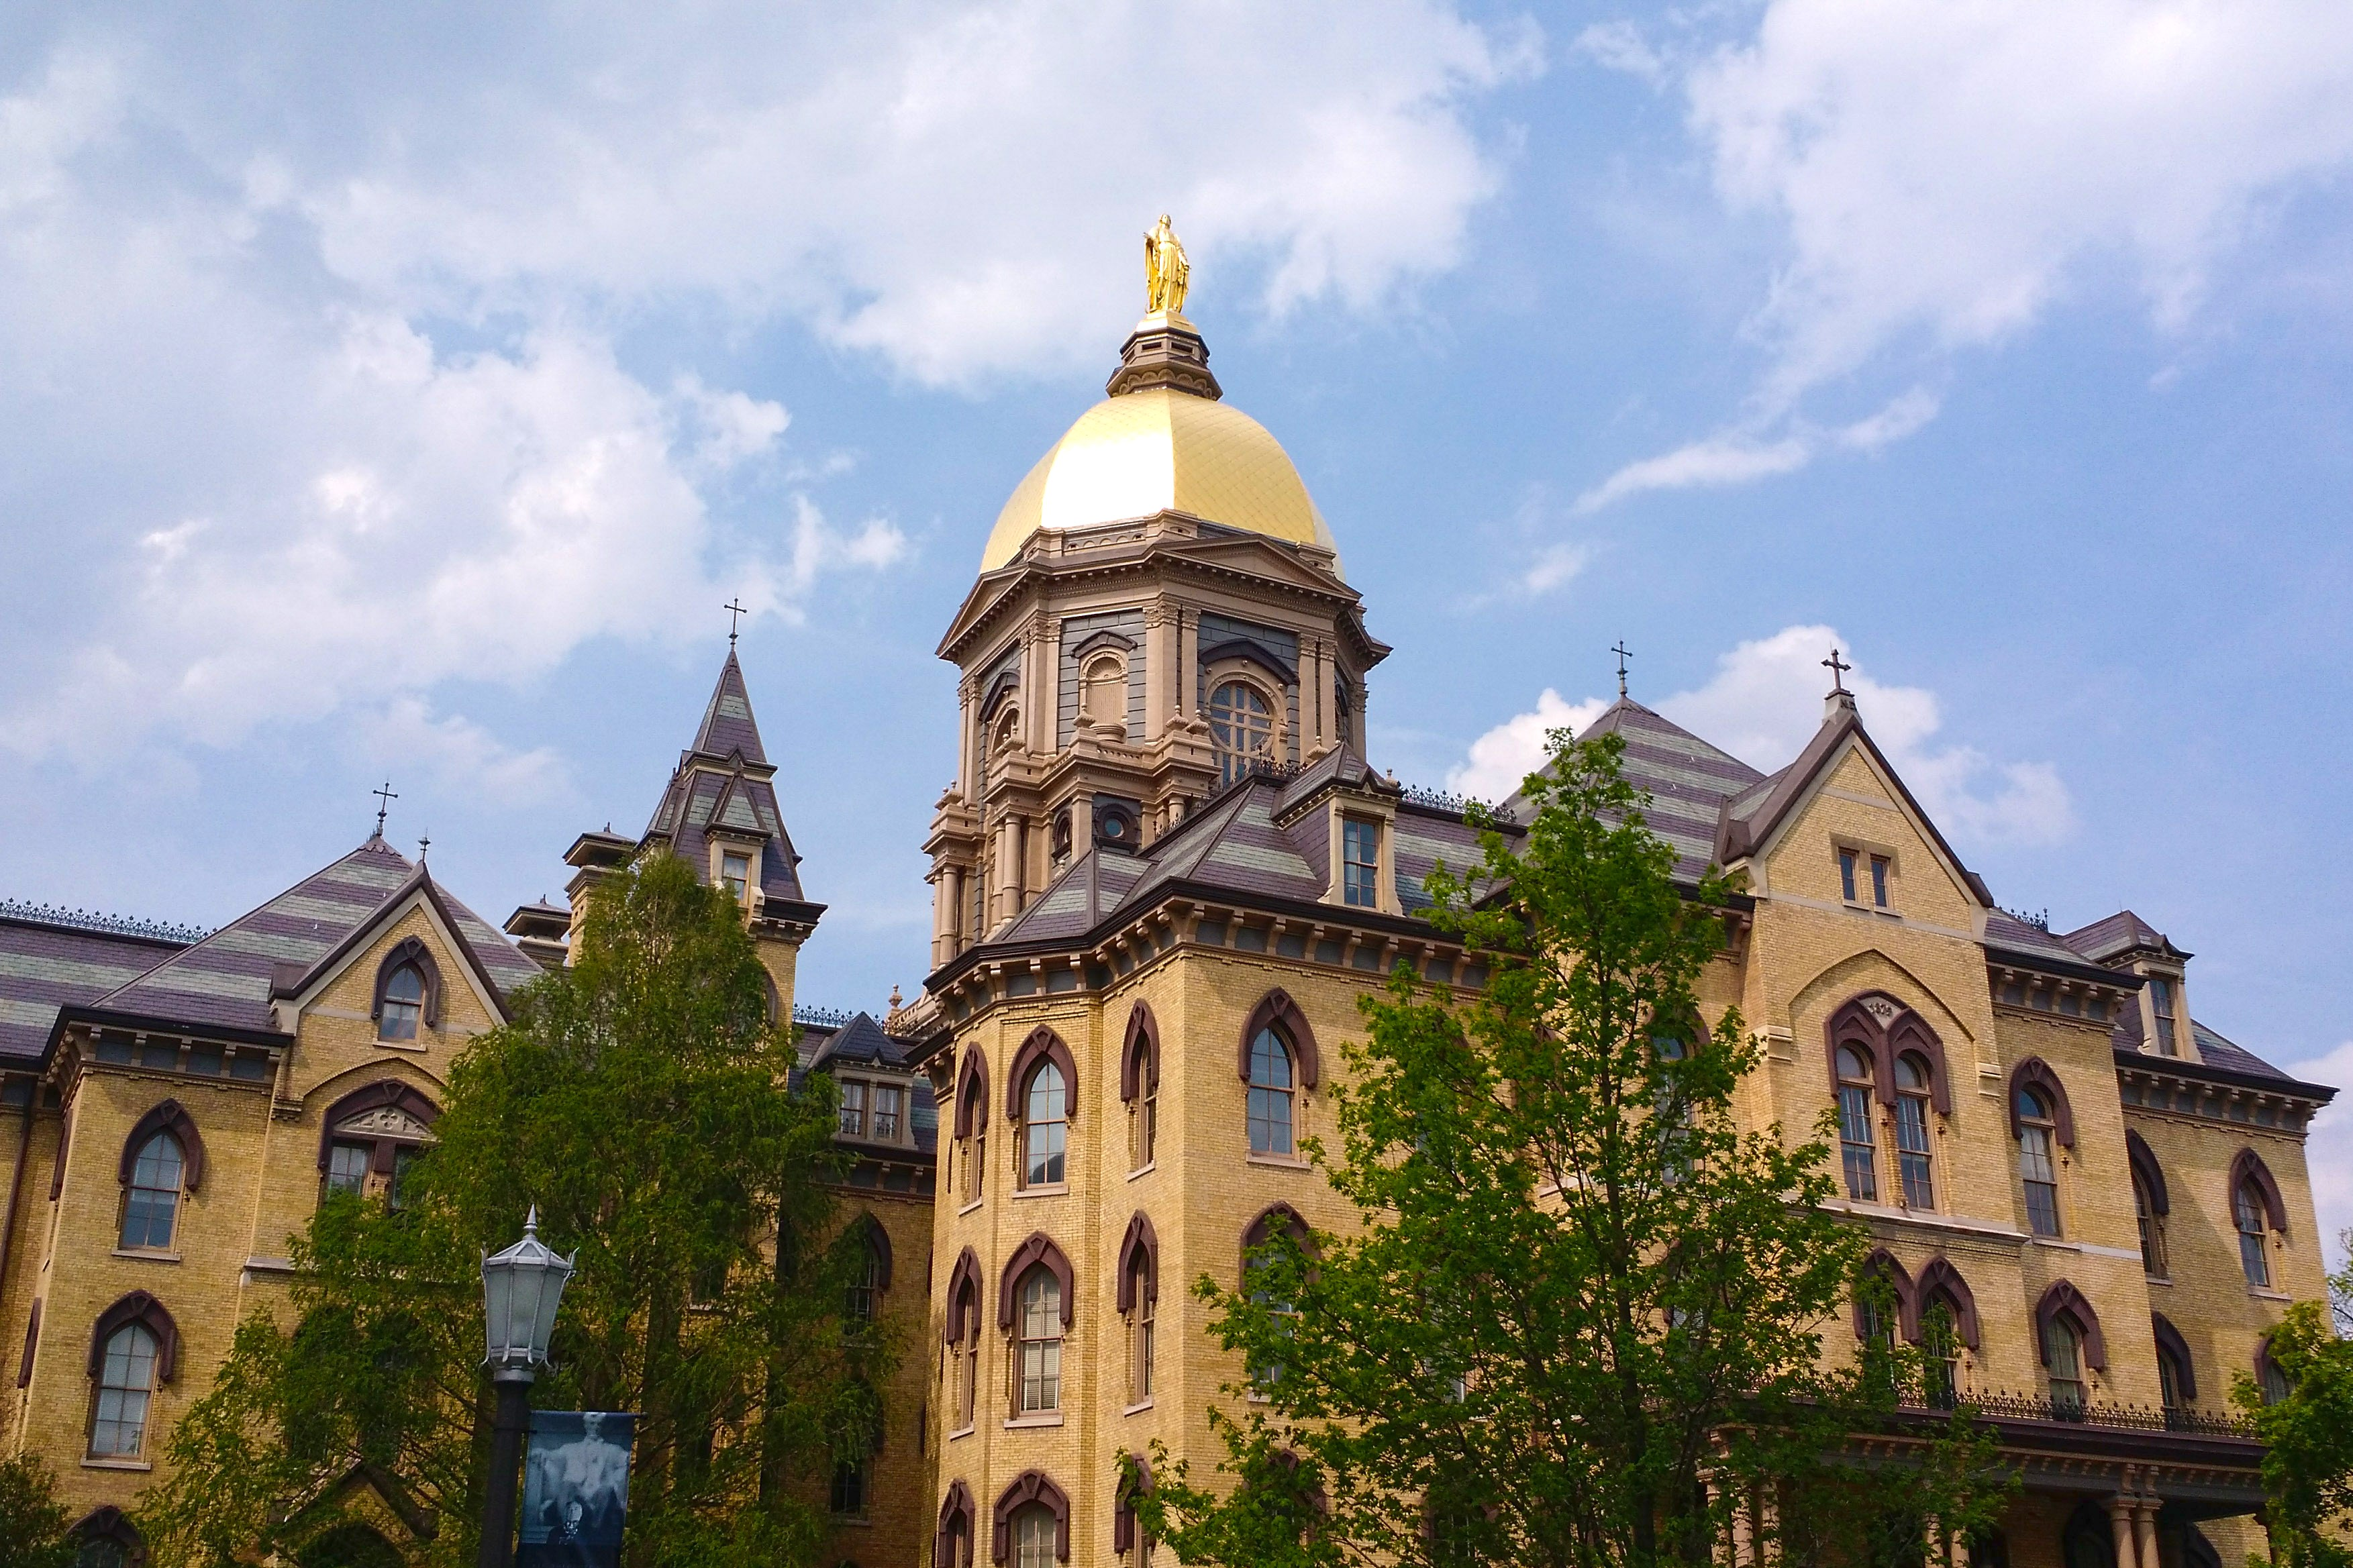 The main building at the University of Notre Dame.